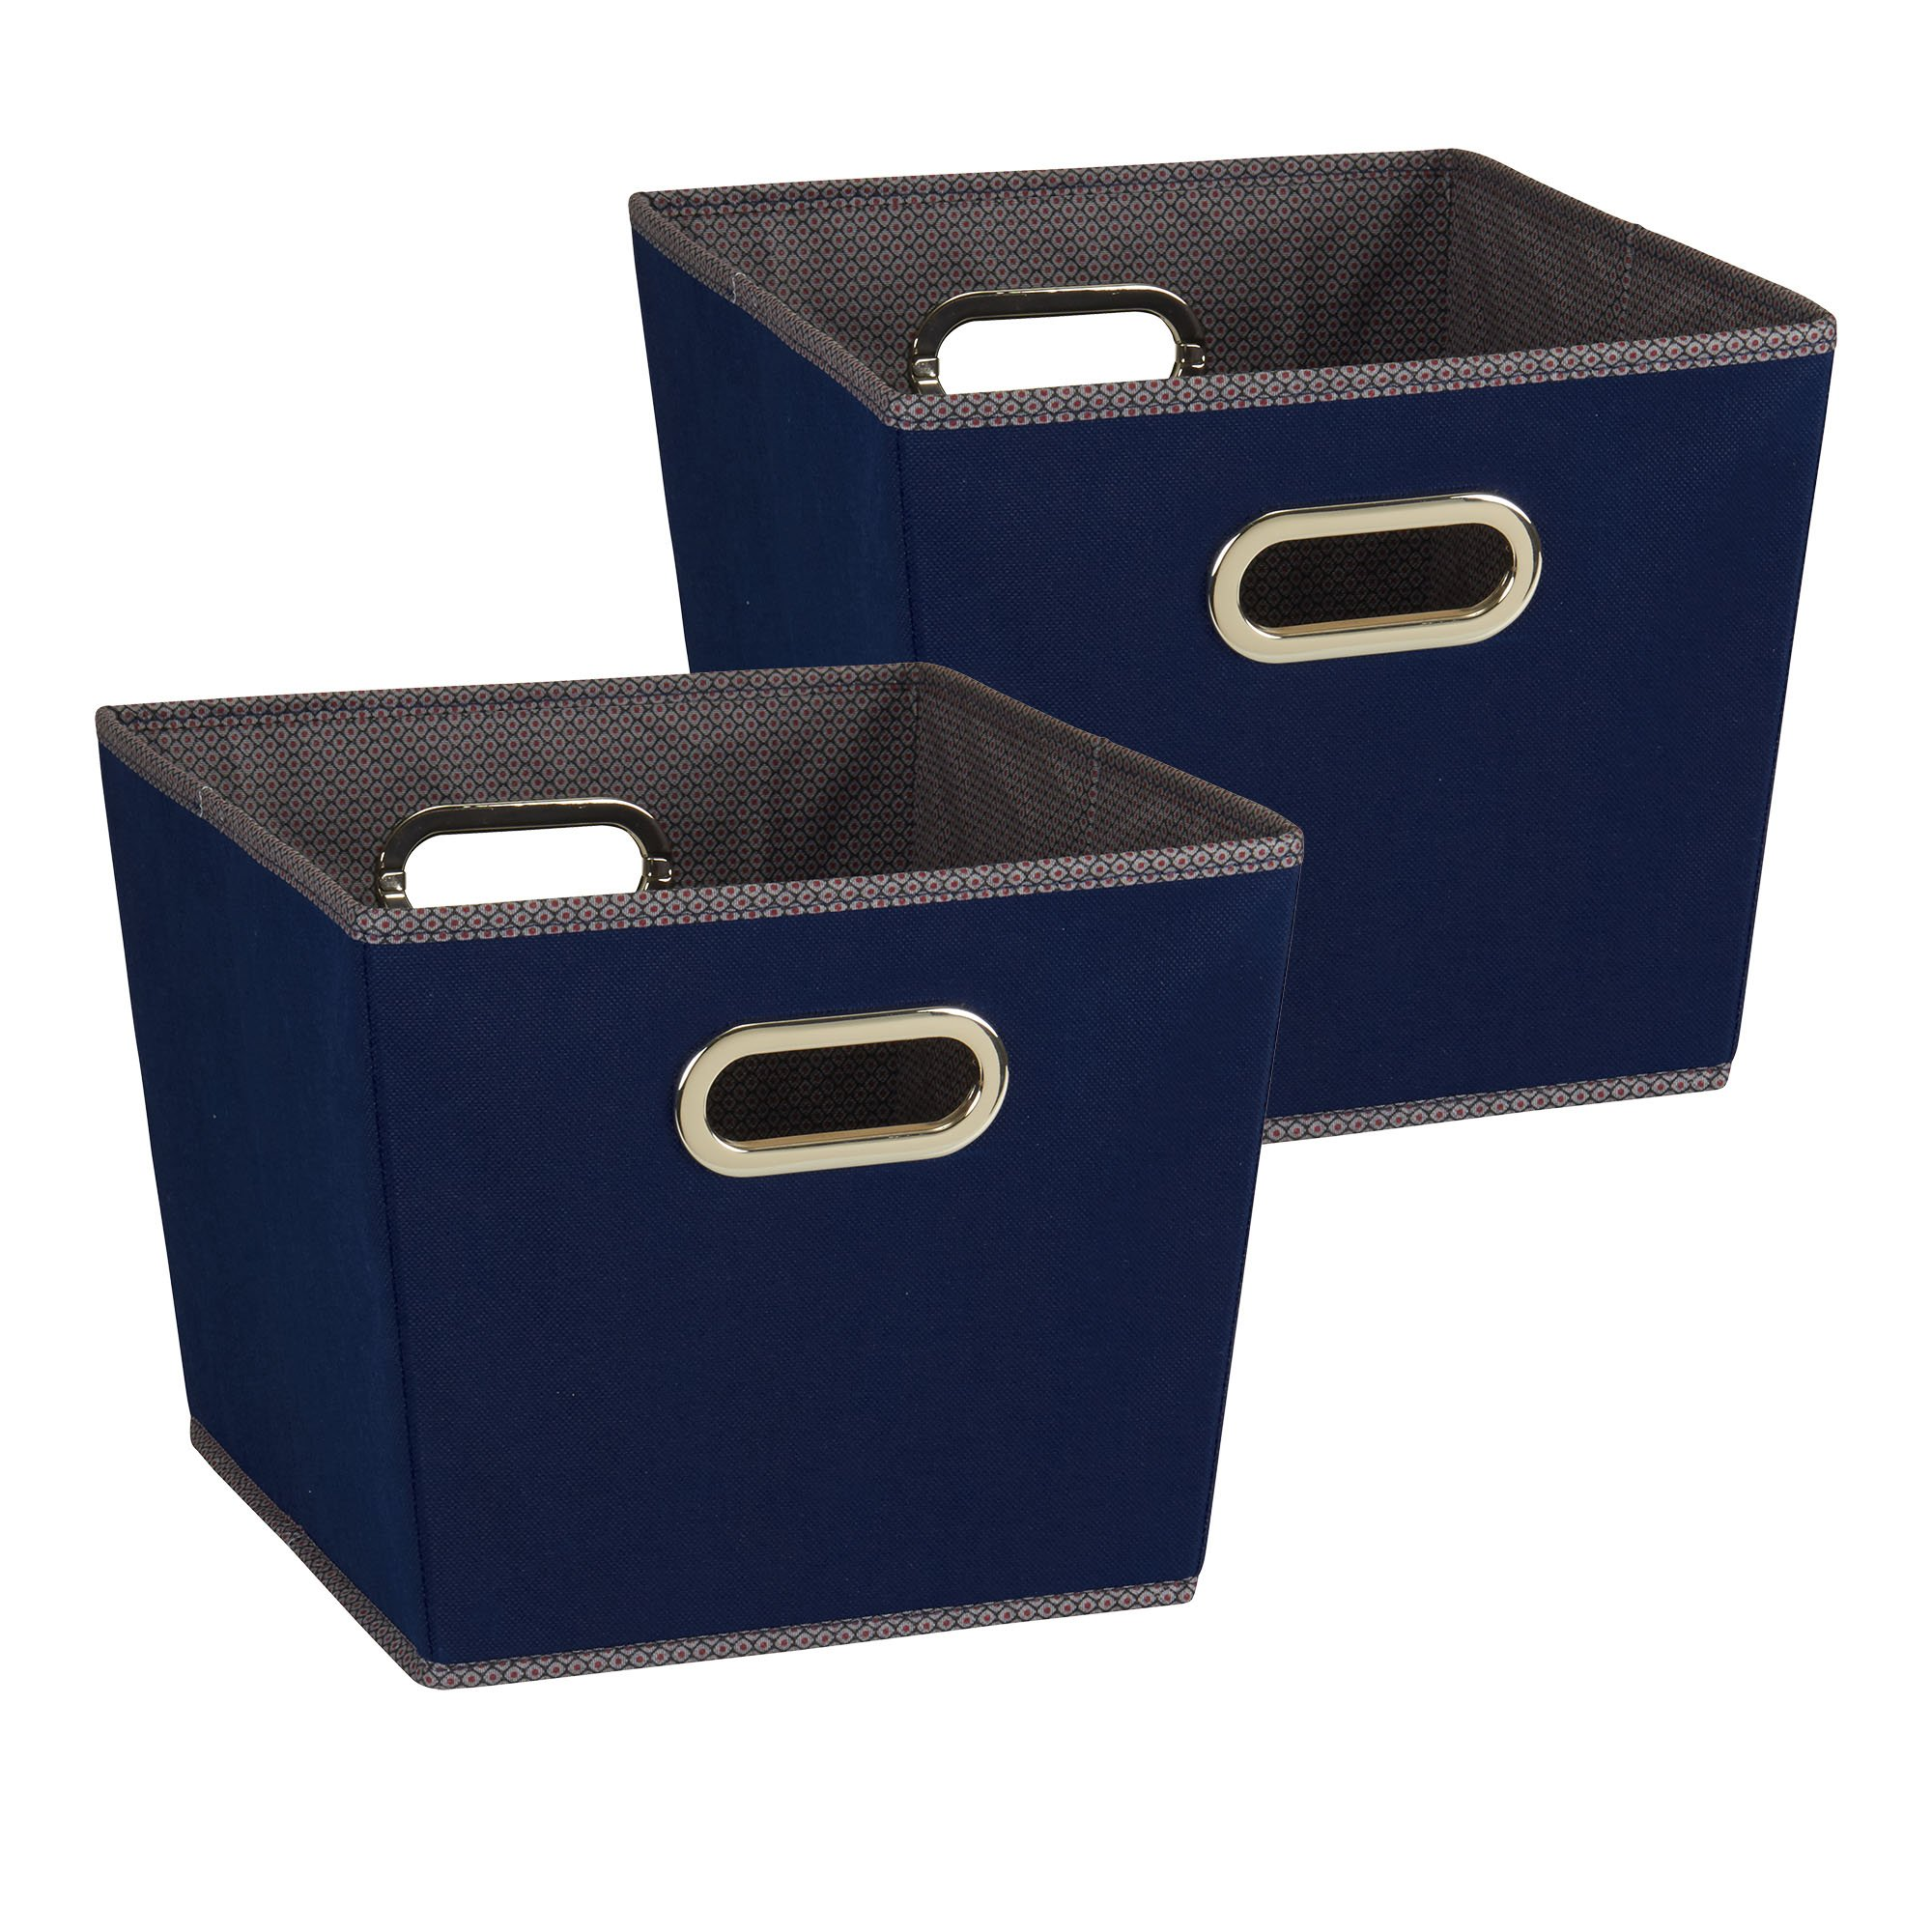 Household Essentials 94 Medium Tapered Decorative Storage Bins | 2 Pack Set Cubby Baskets | Navy Blue